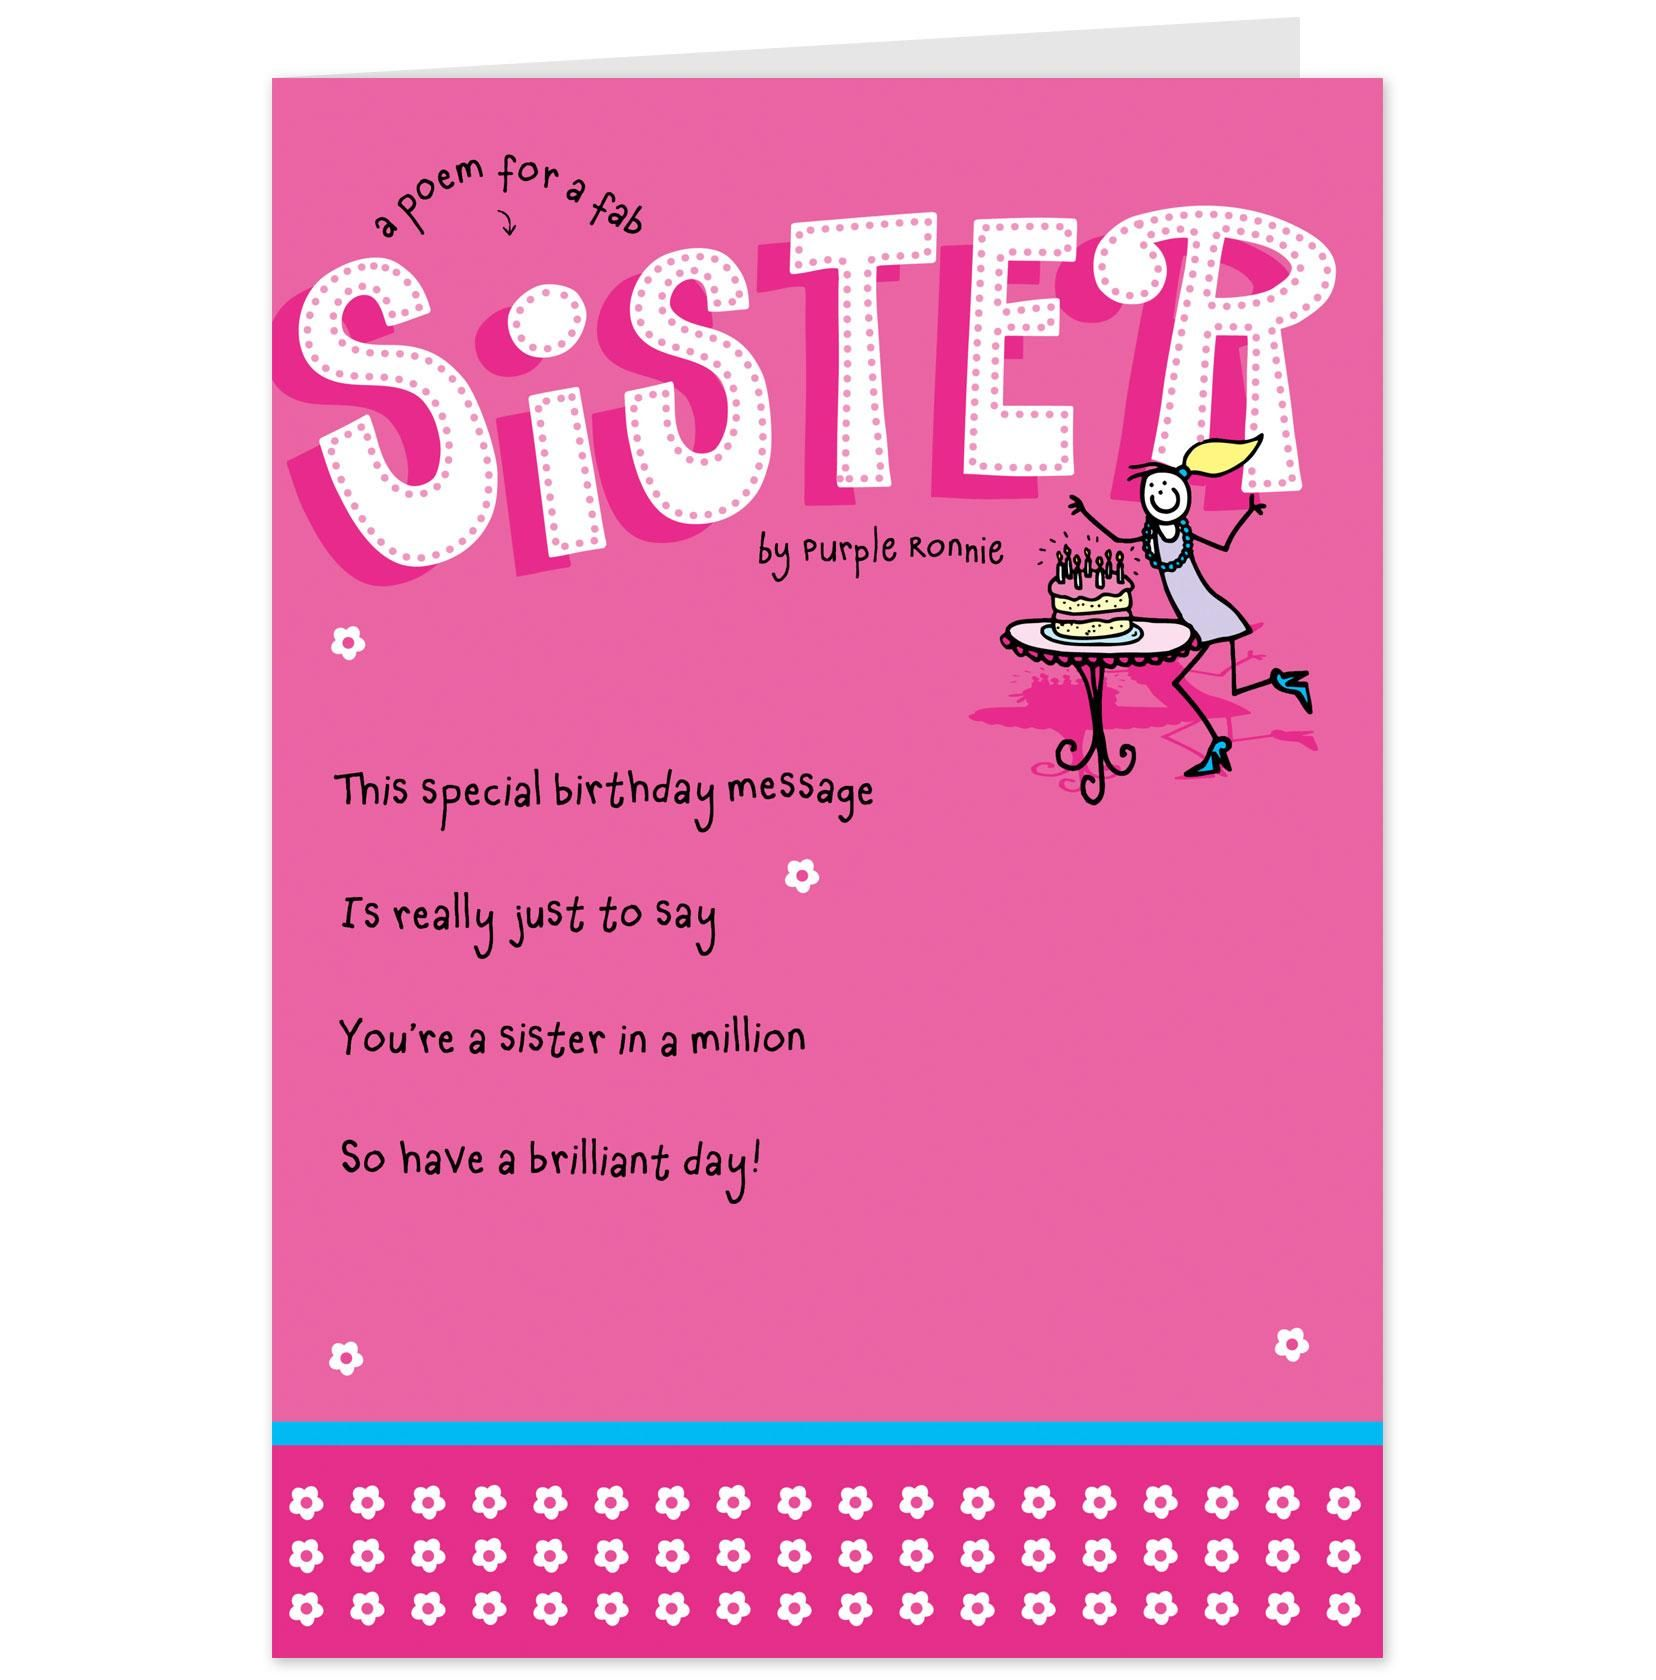 Happy birthday linda brothers sisters pinterest funny happiness quotes beautiful happy birthday for sister funny breathtaking cards throughout ideas excellent brother best free home design idea bookmarktalkfo Gallery